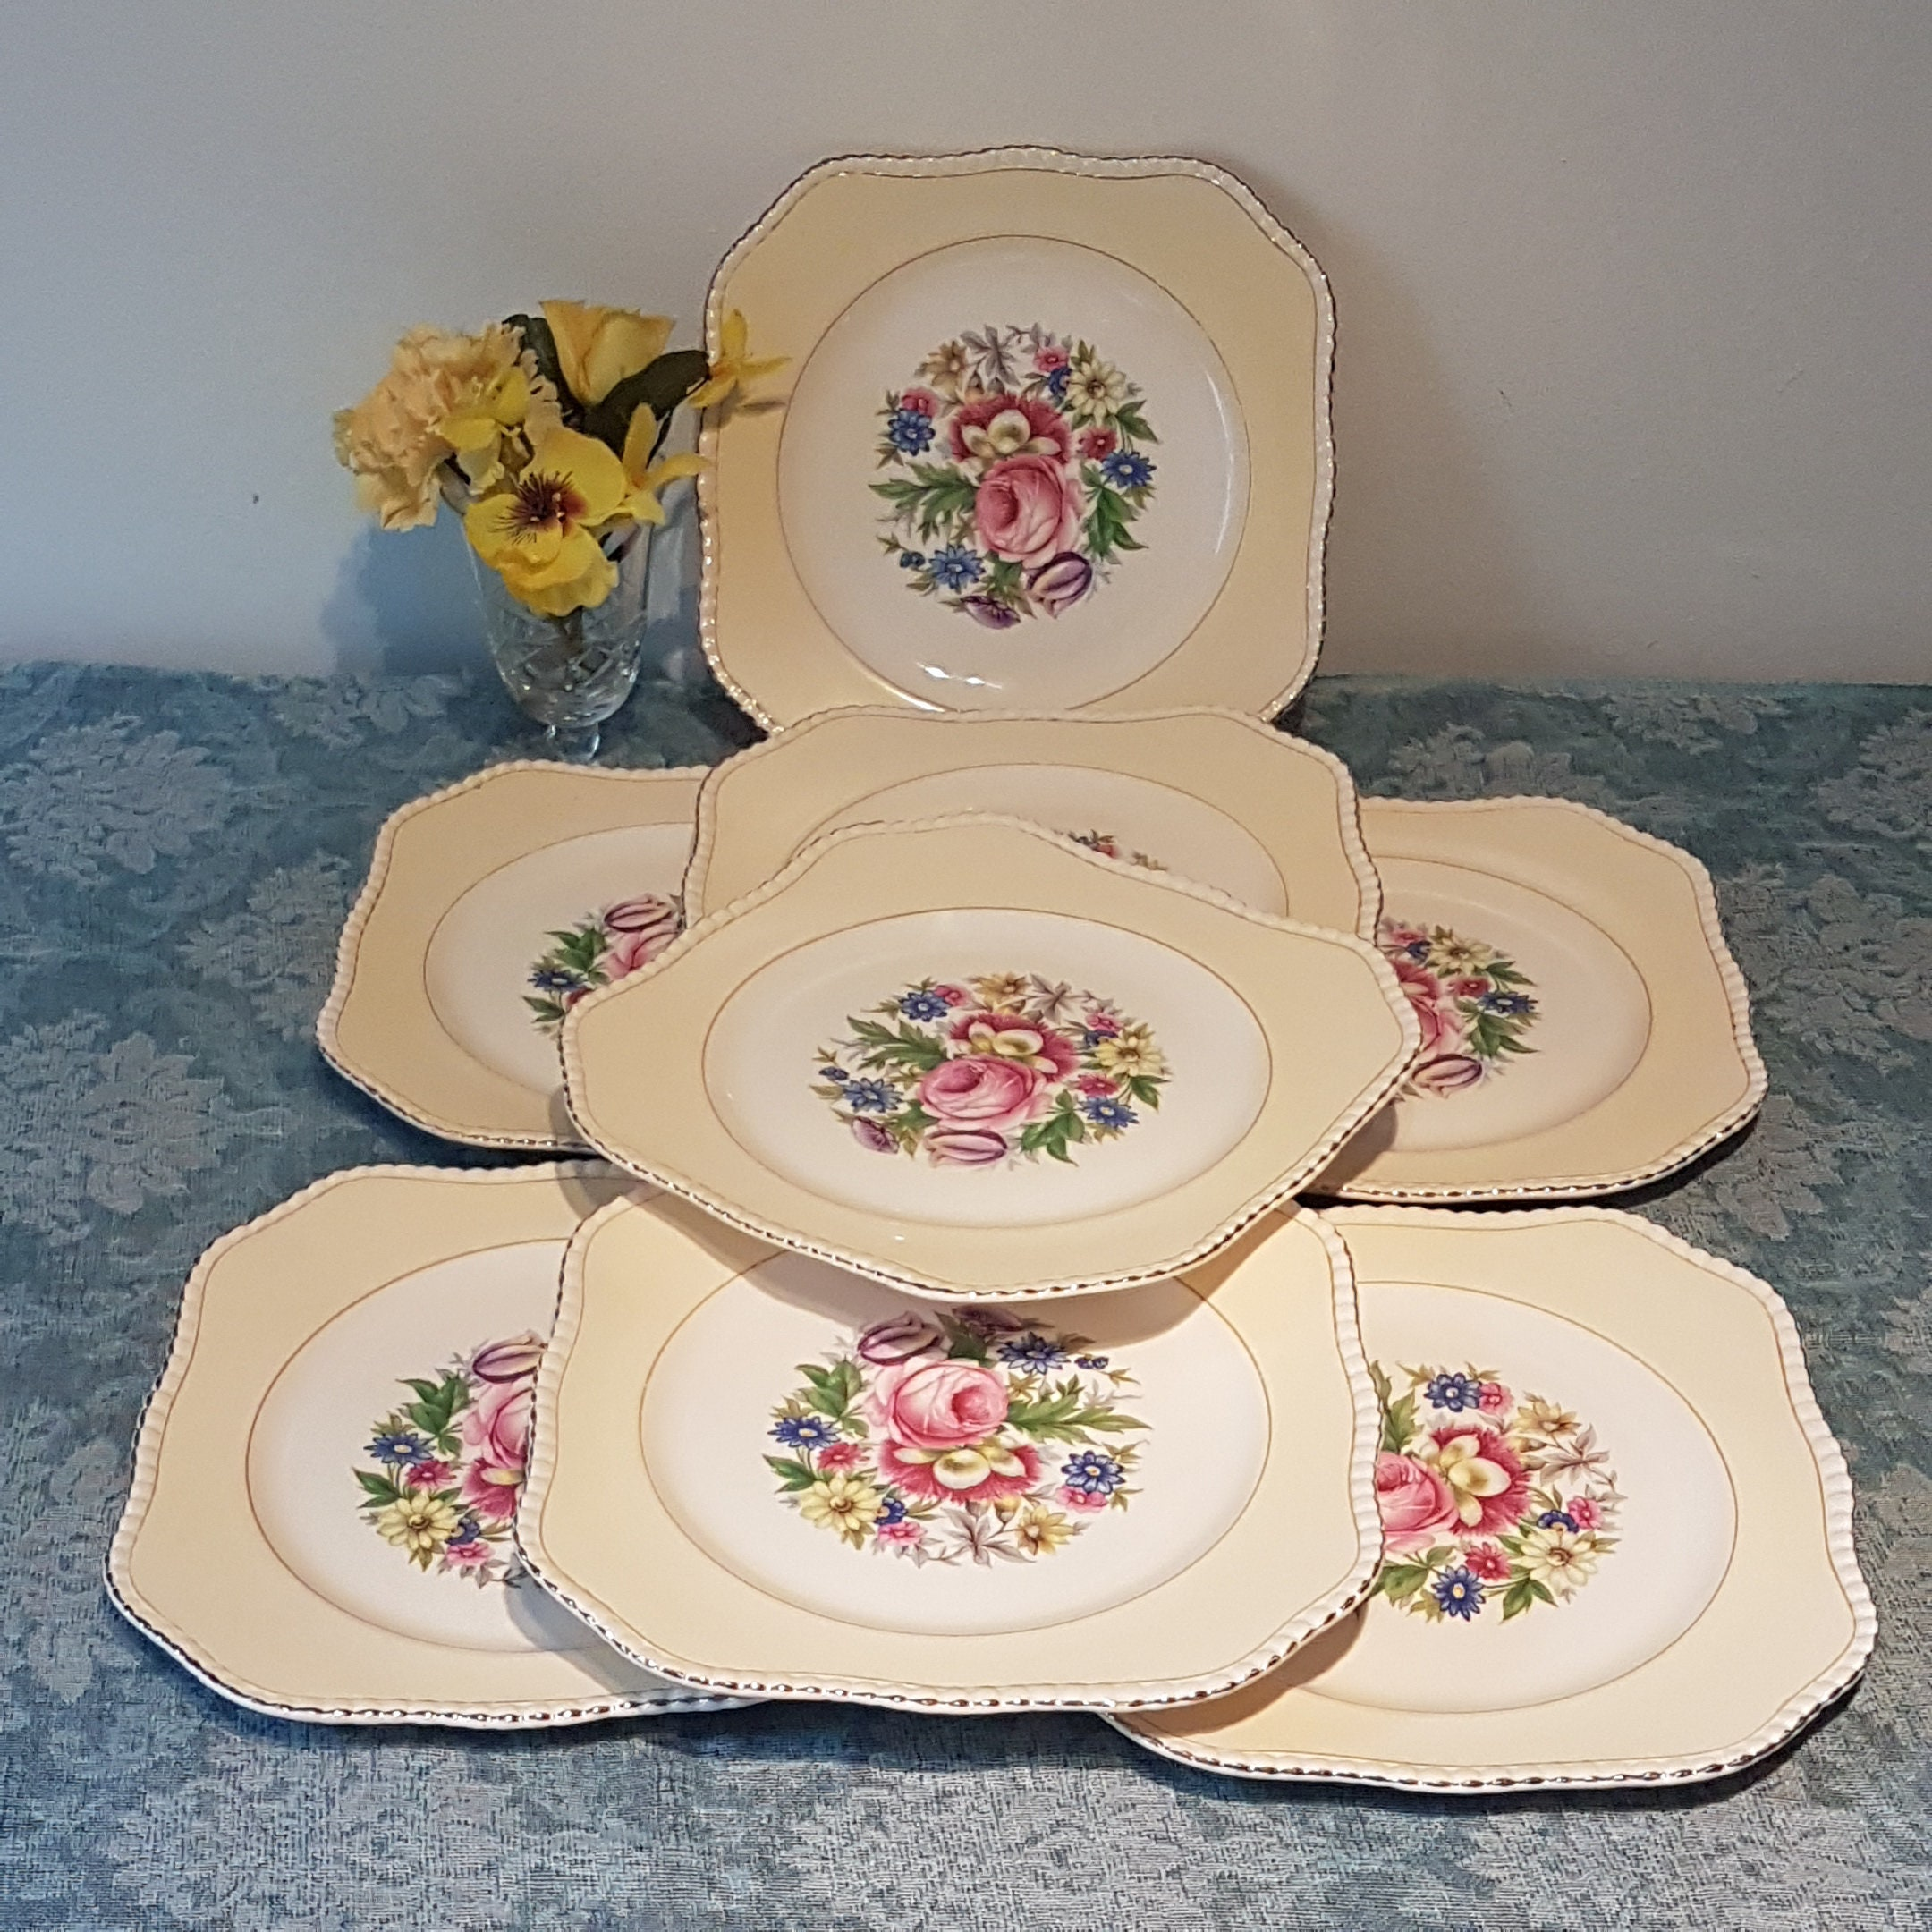 Soho Pottery Square Yellow Plate Set of 8 Floral Lunch Plates Country Chic 1930/'s Farmhouse Kitchen